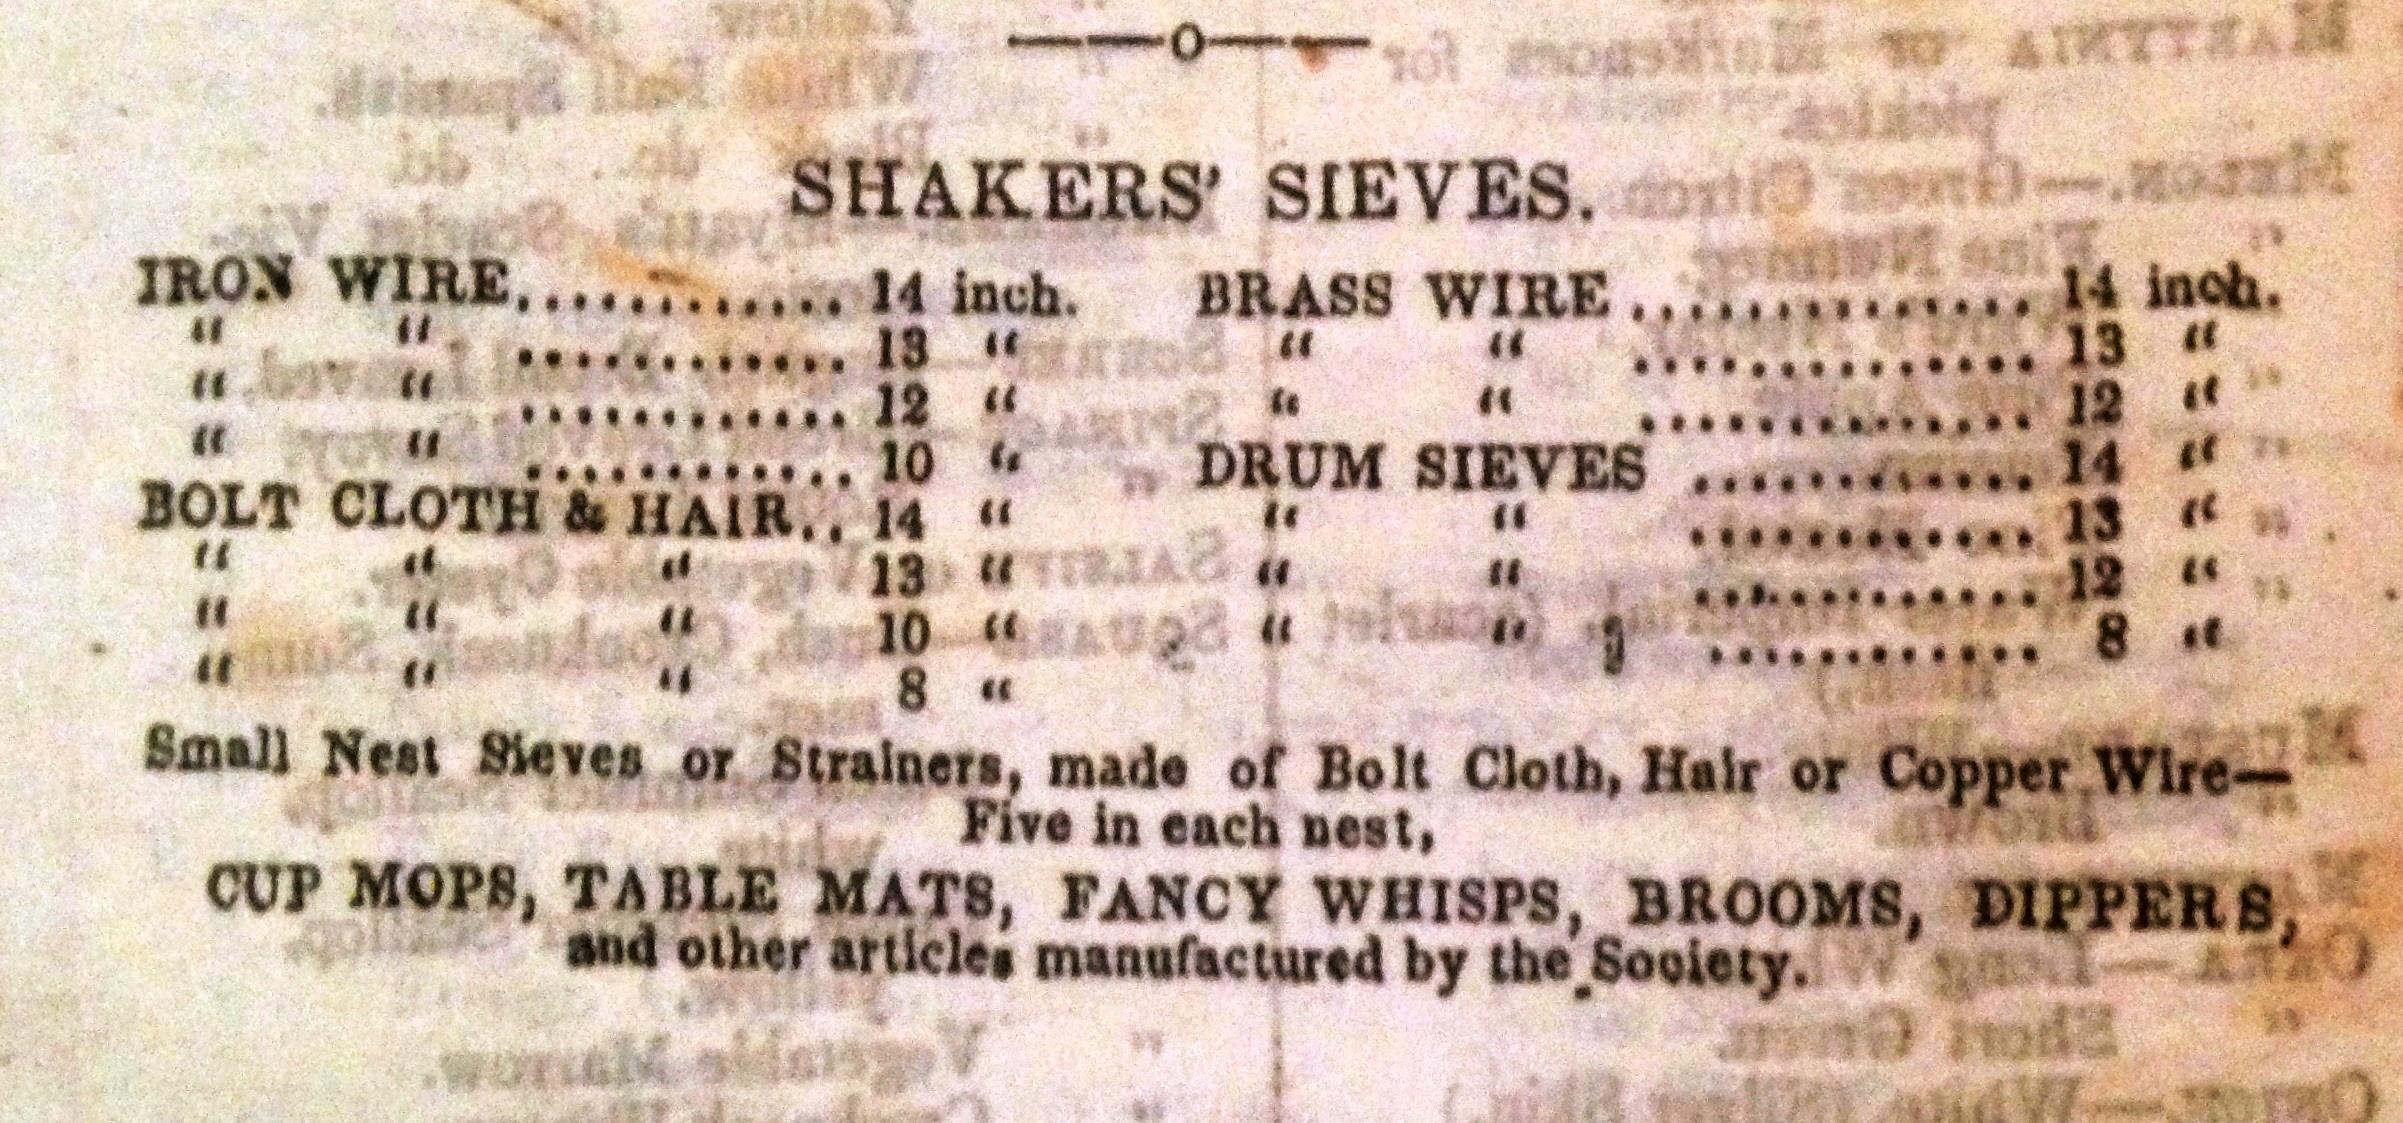 """""""Shakers' Sieves,""""Annual Wholesale Herbalist's Catalogue of Medicinal Plants, and Botanical Remedies"""